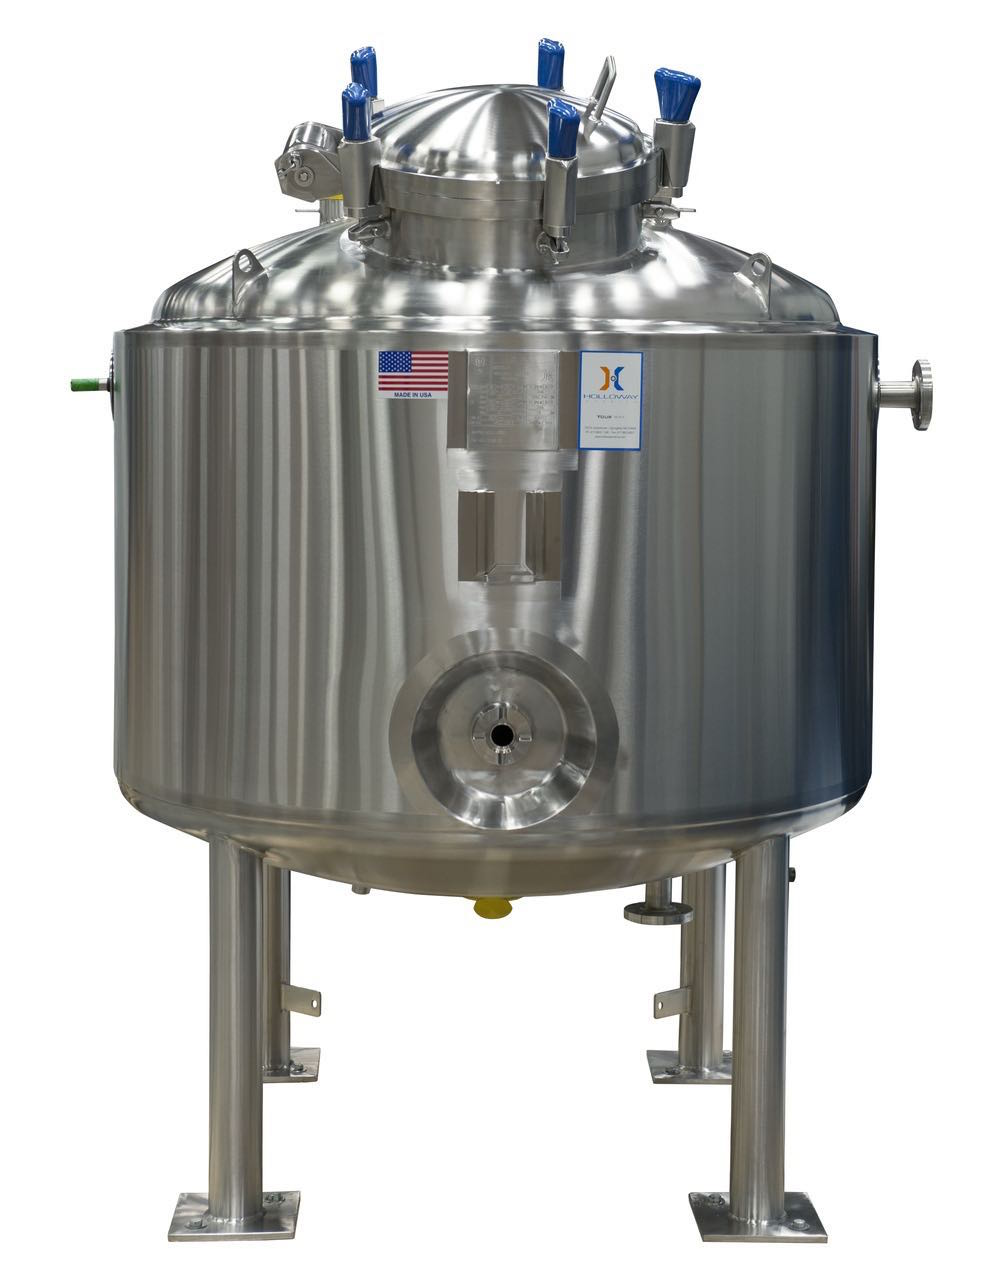 CIP stainless steel tanks and pressure vessels make cleaning easy.